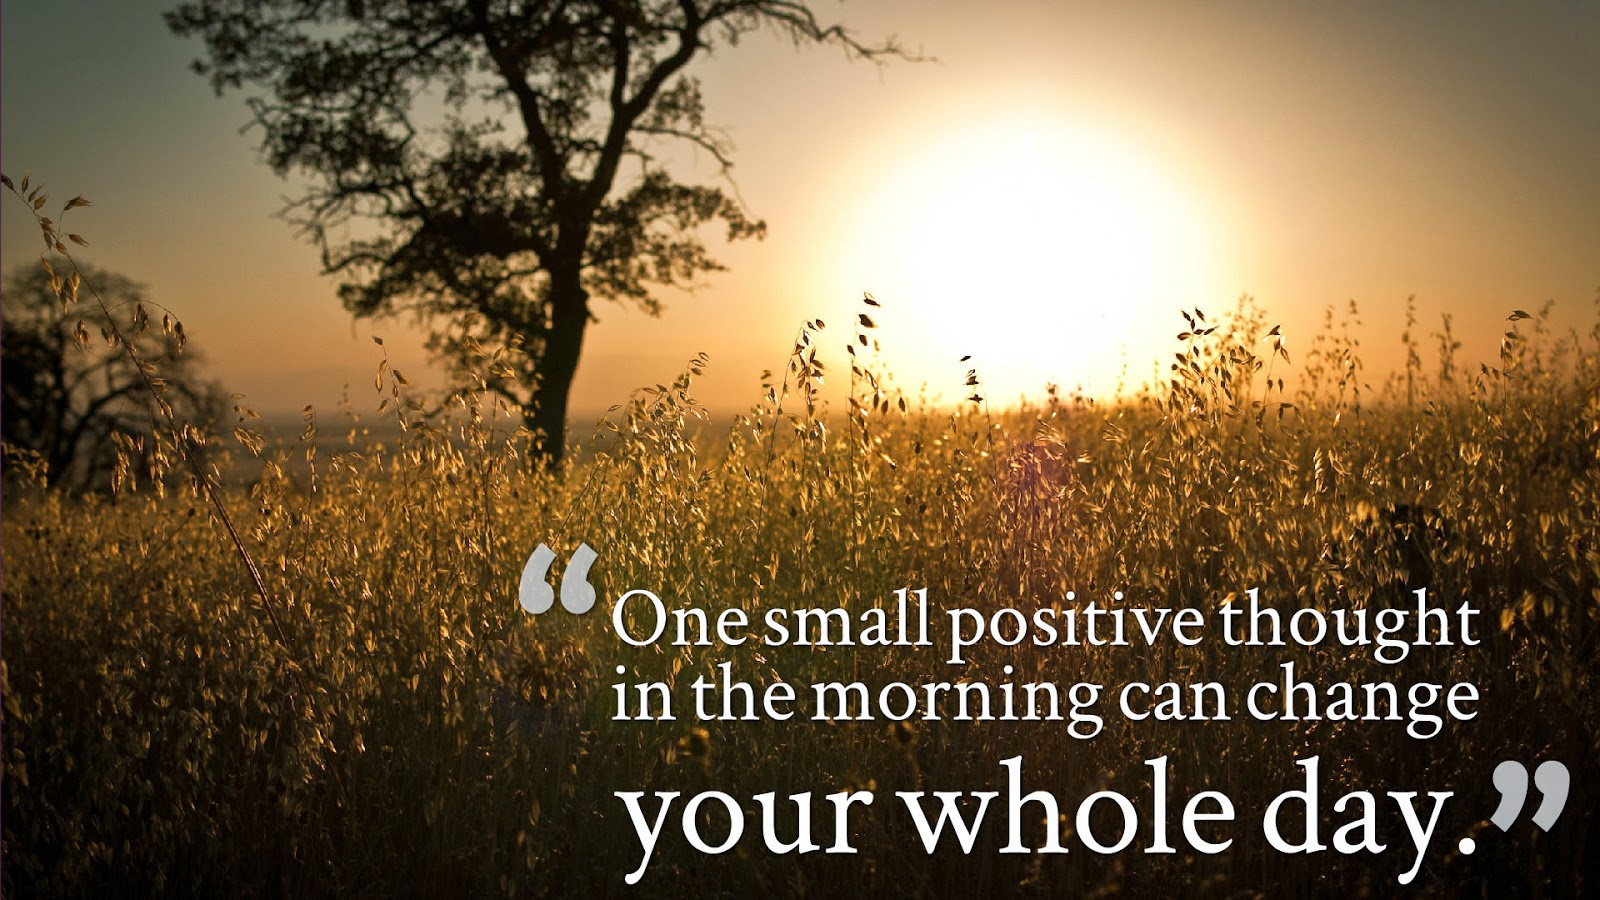 Morning Motivational Quotes Wishing For Many More Wishes Good Morning Quotes With Beautiful